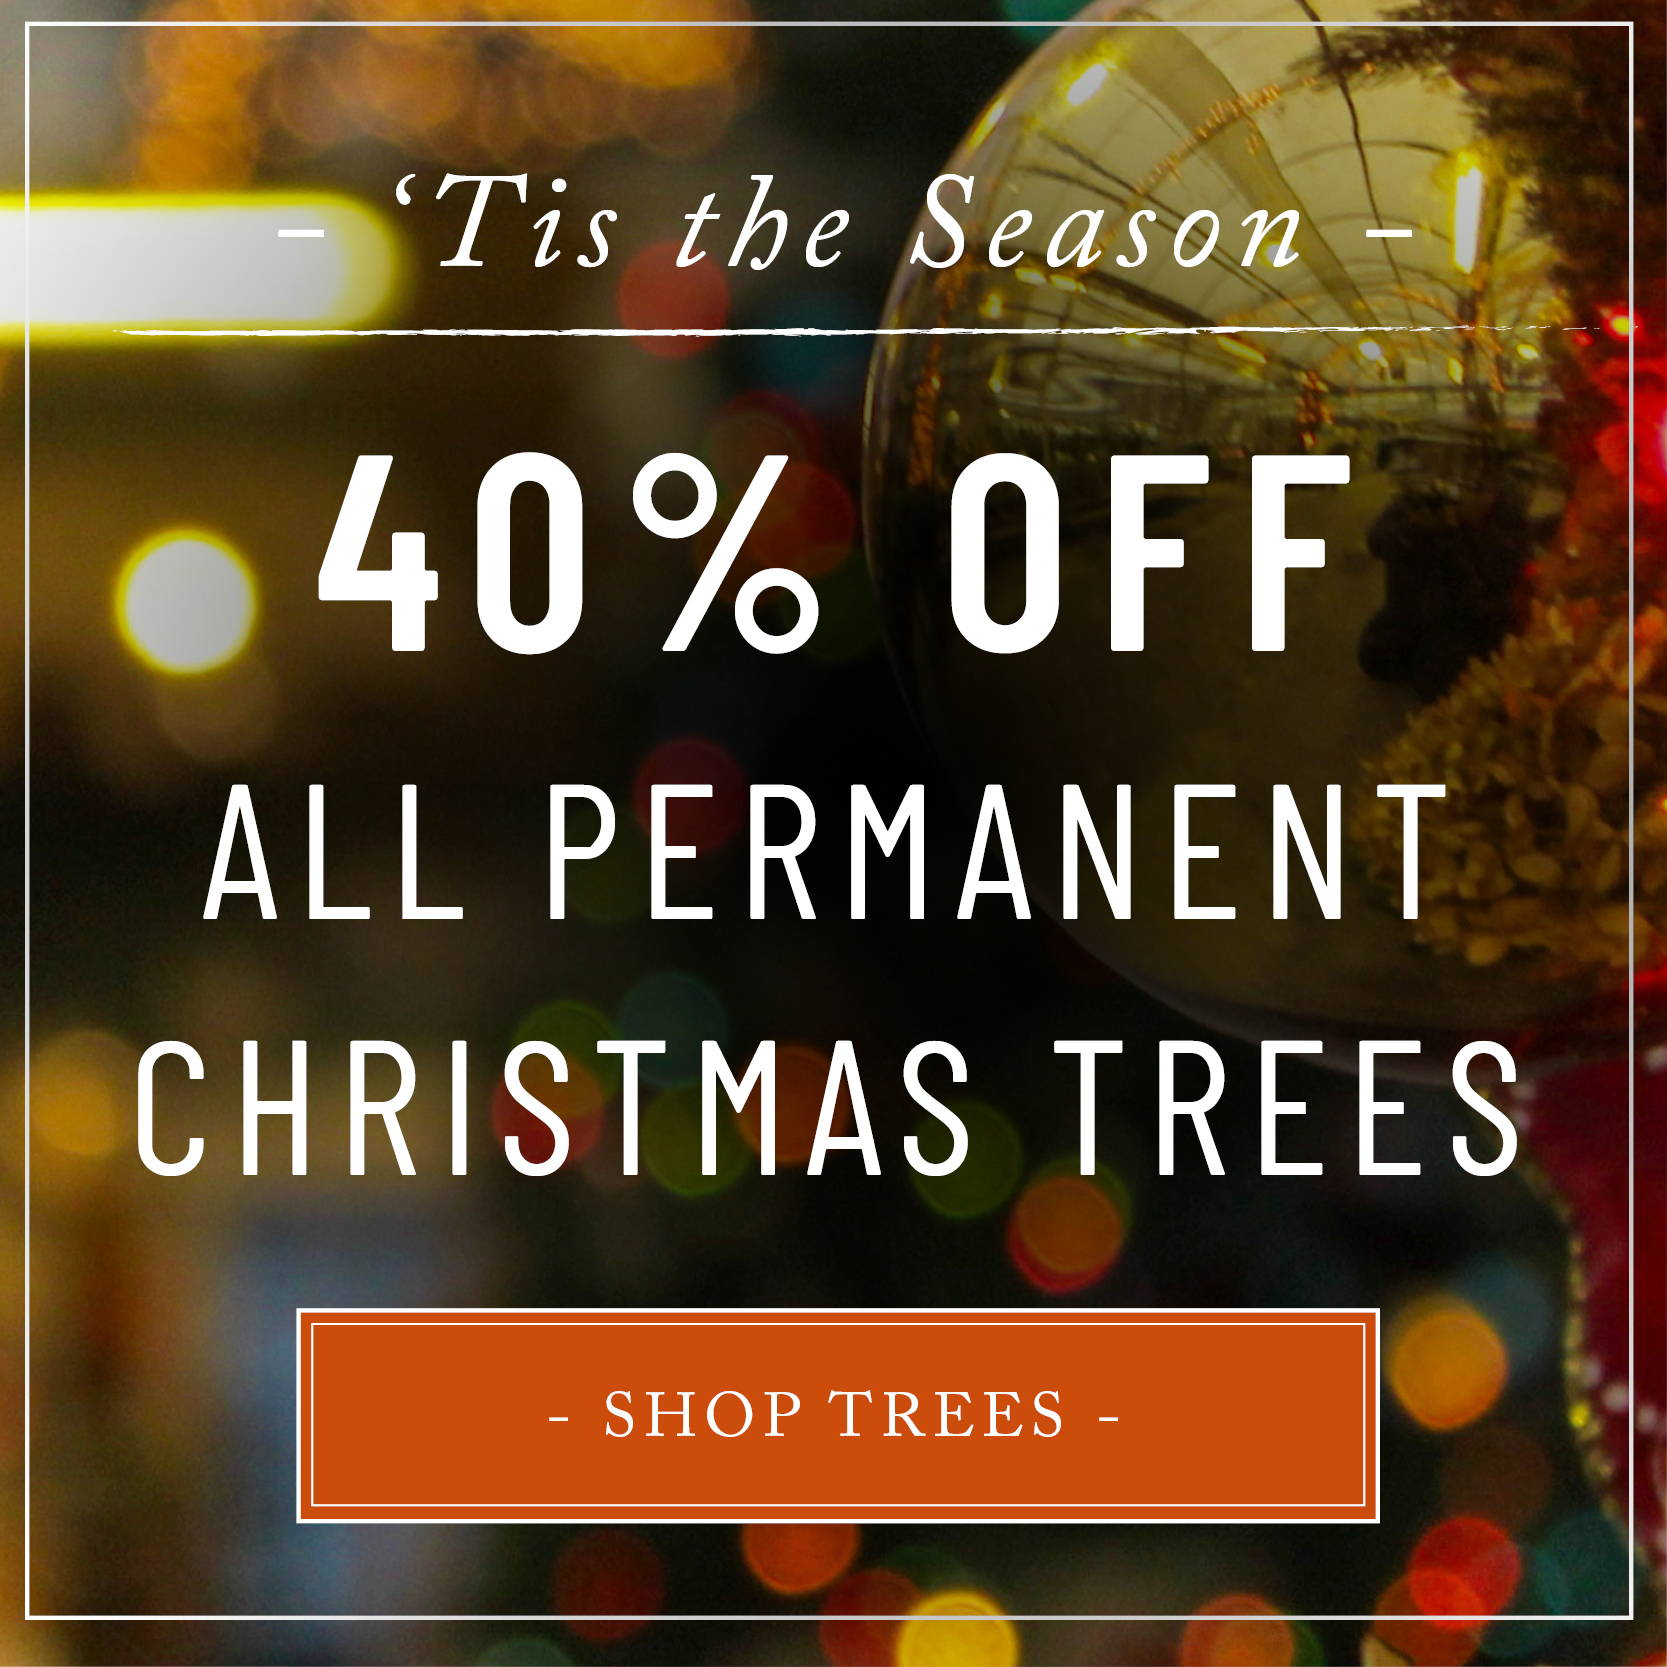 40% OFF All Permanent Christmas Trees